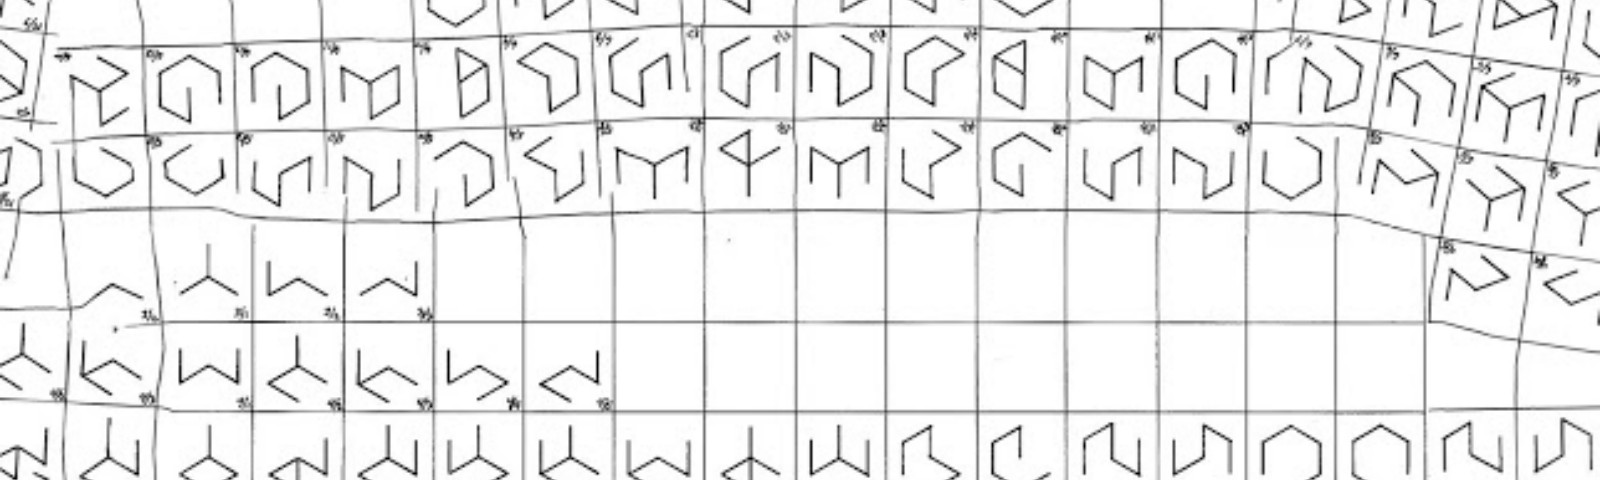 Variations of a 2D cube with missing lines showing its openness all placed on a grid covering the entire white canvas.